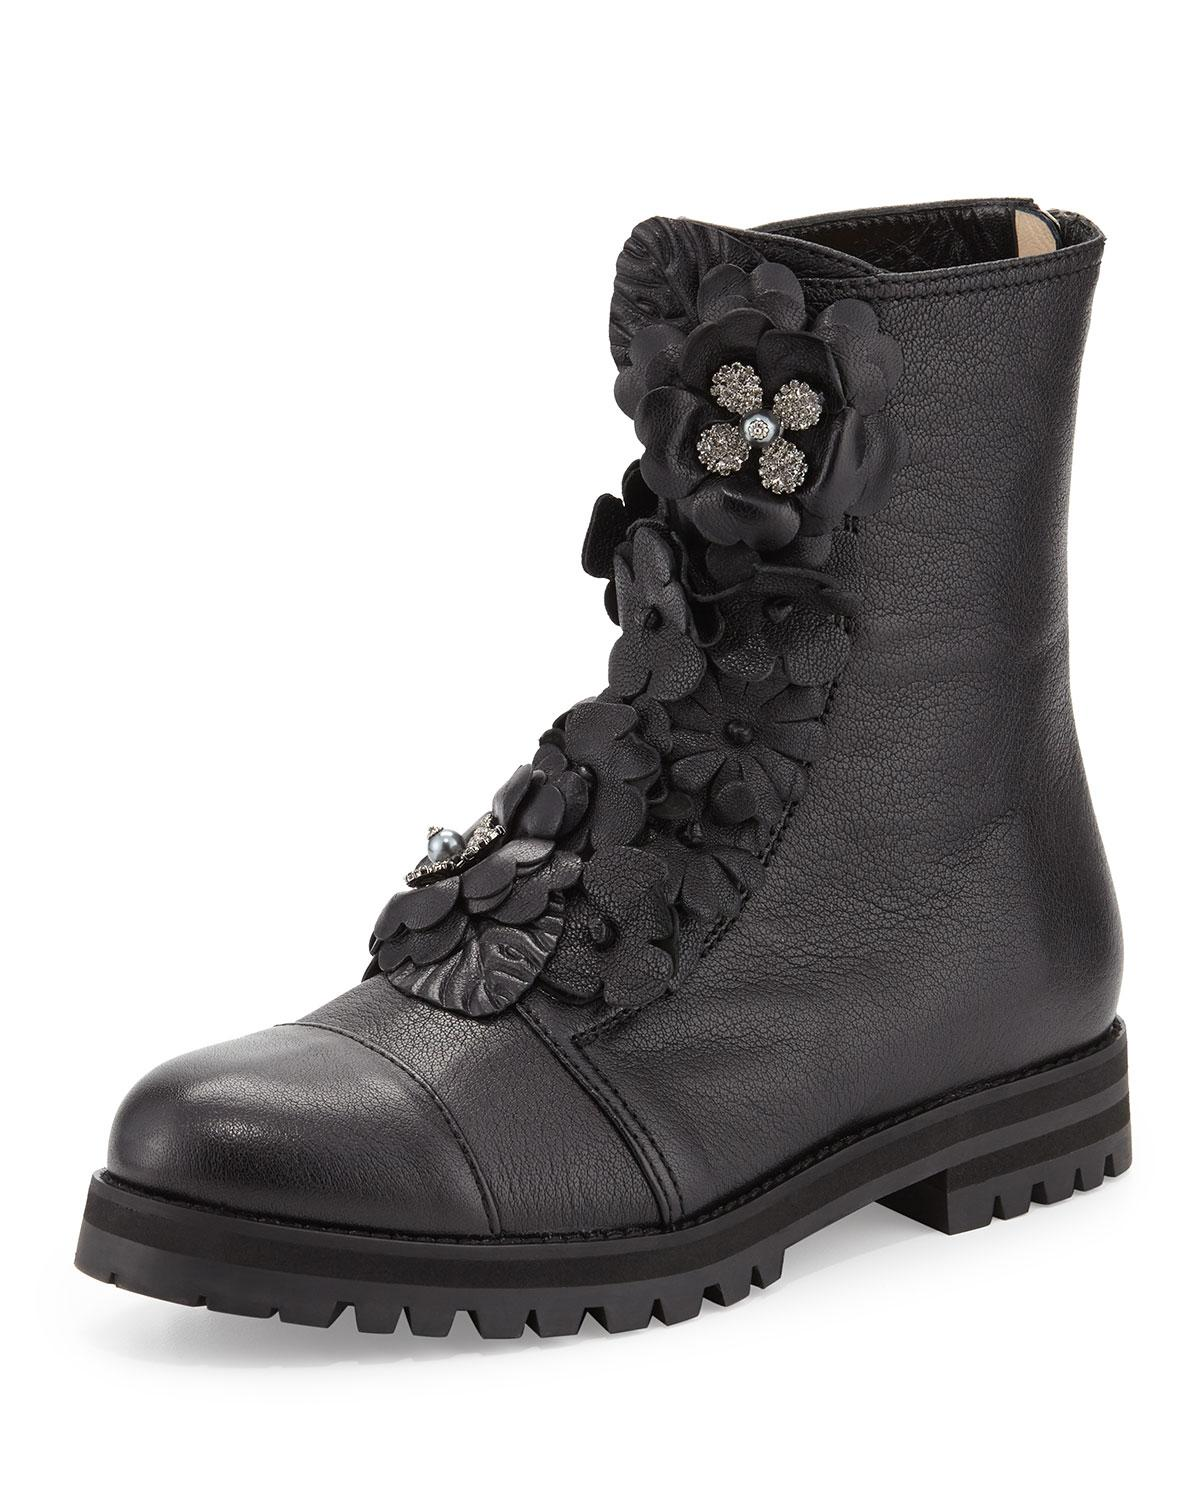 Jimmy Choo Havana Floral Embellished Combat Boot In Black